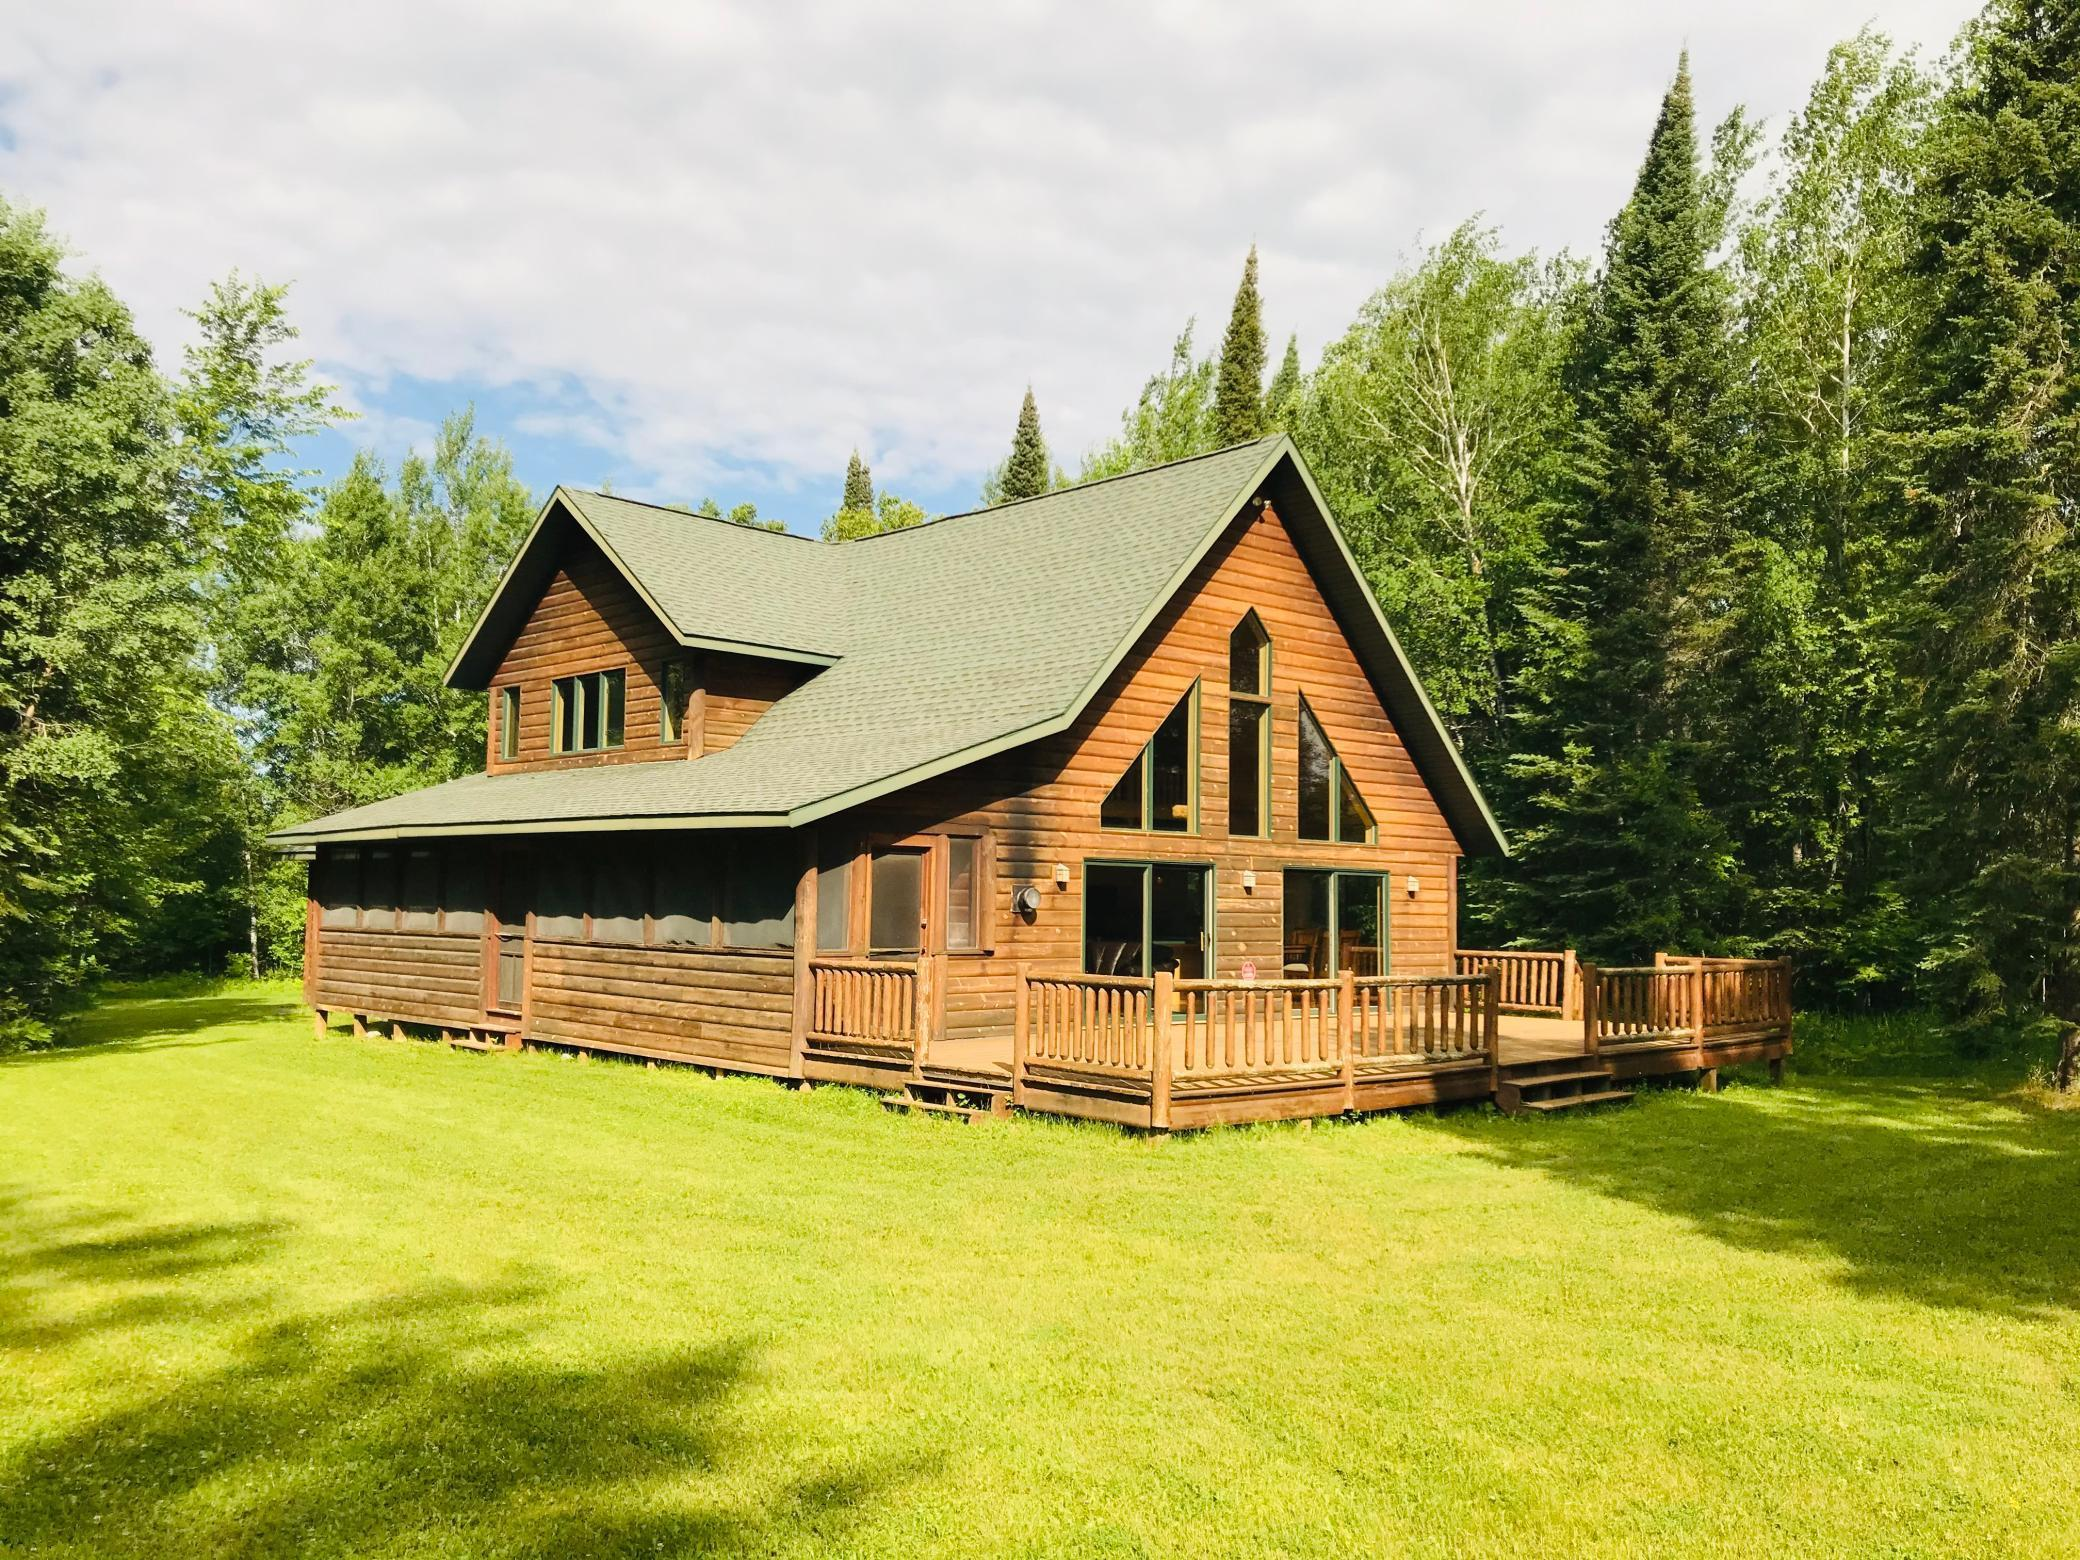 Exceptional northwoods home/cabin located on Bass Lake (31083900) near Max in NW Itasca County. Excellent lake with good water quality and fishing. Quiet spot. Home features open floor plan with vaulted ceilings, fireplace, screen porch, deck, central air, and only about 15 easy steps to lake. Very, very nice place! Bass Lake is 210 acres in size.